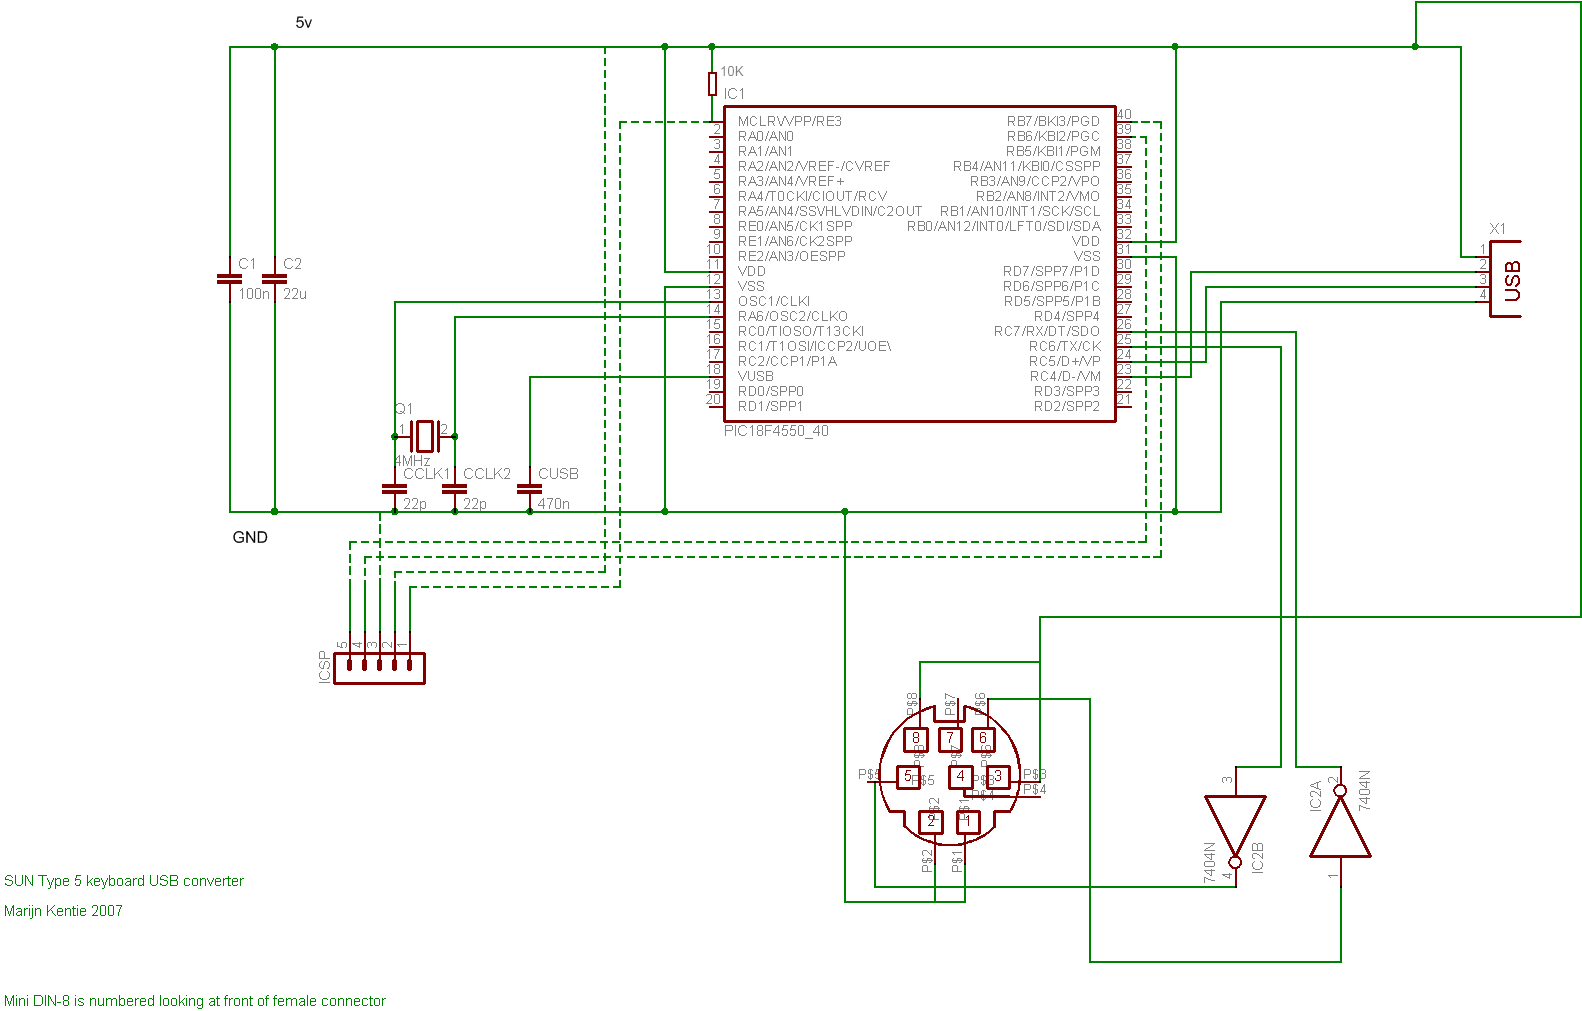 Usb To Ps 2 Keyboard Adapter Wiring Diagram | Wiring Diagram - Usb Keyboard To Ps2 Adapter Wiring Diagram